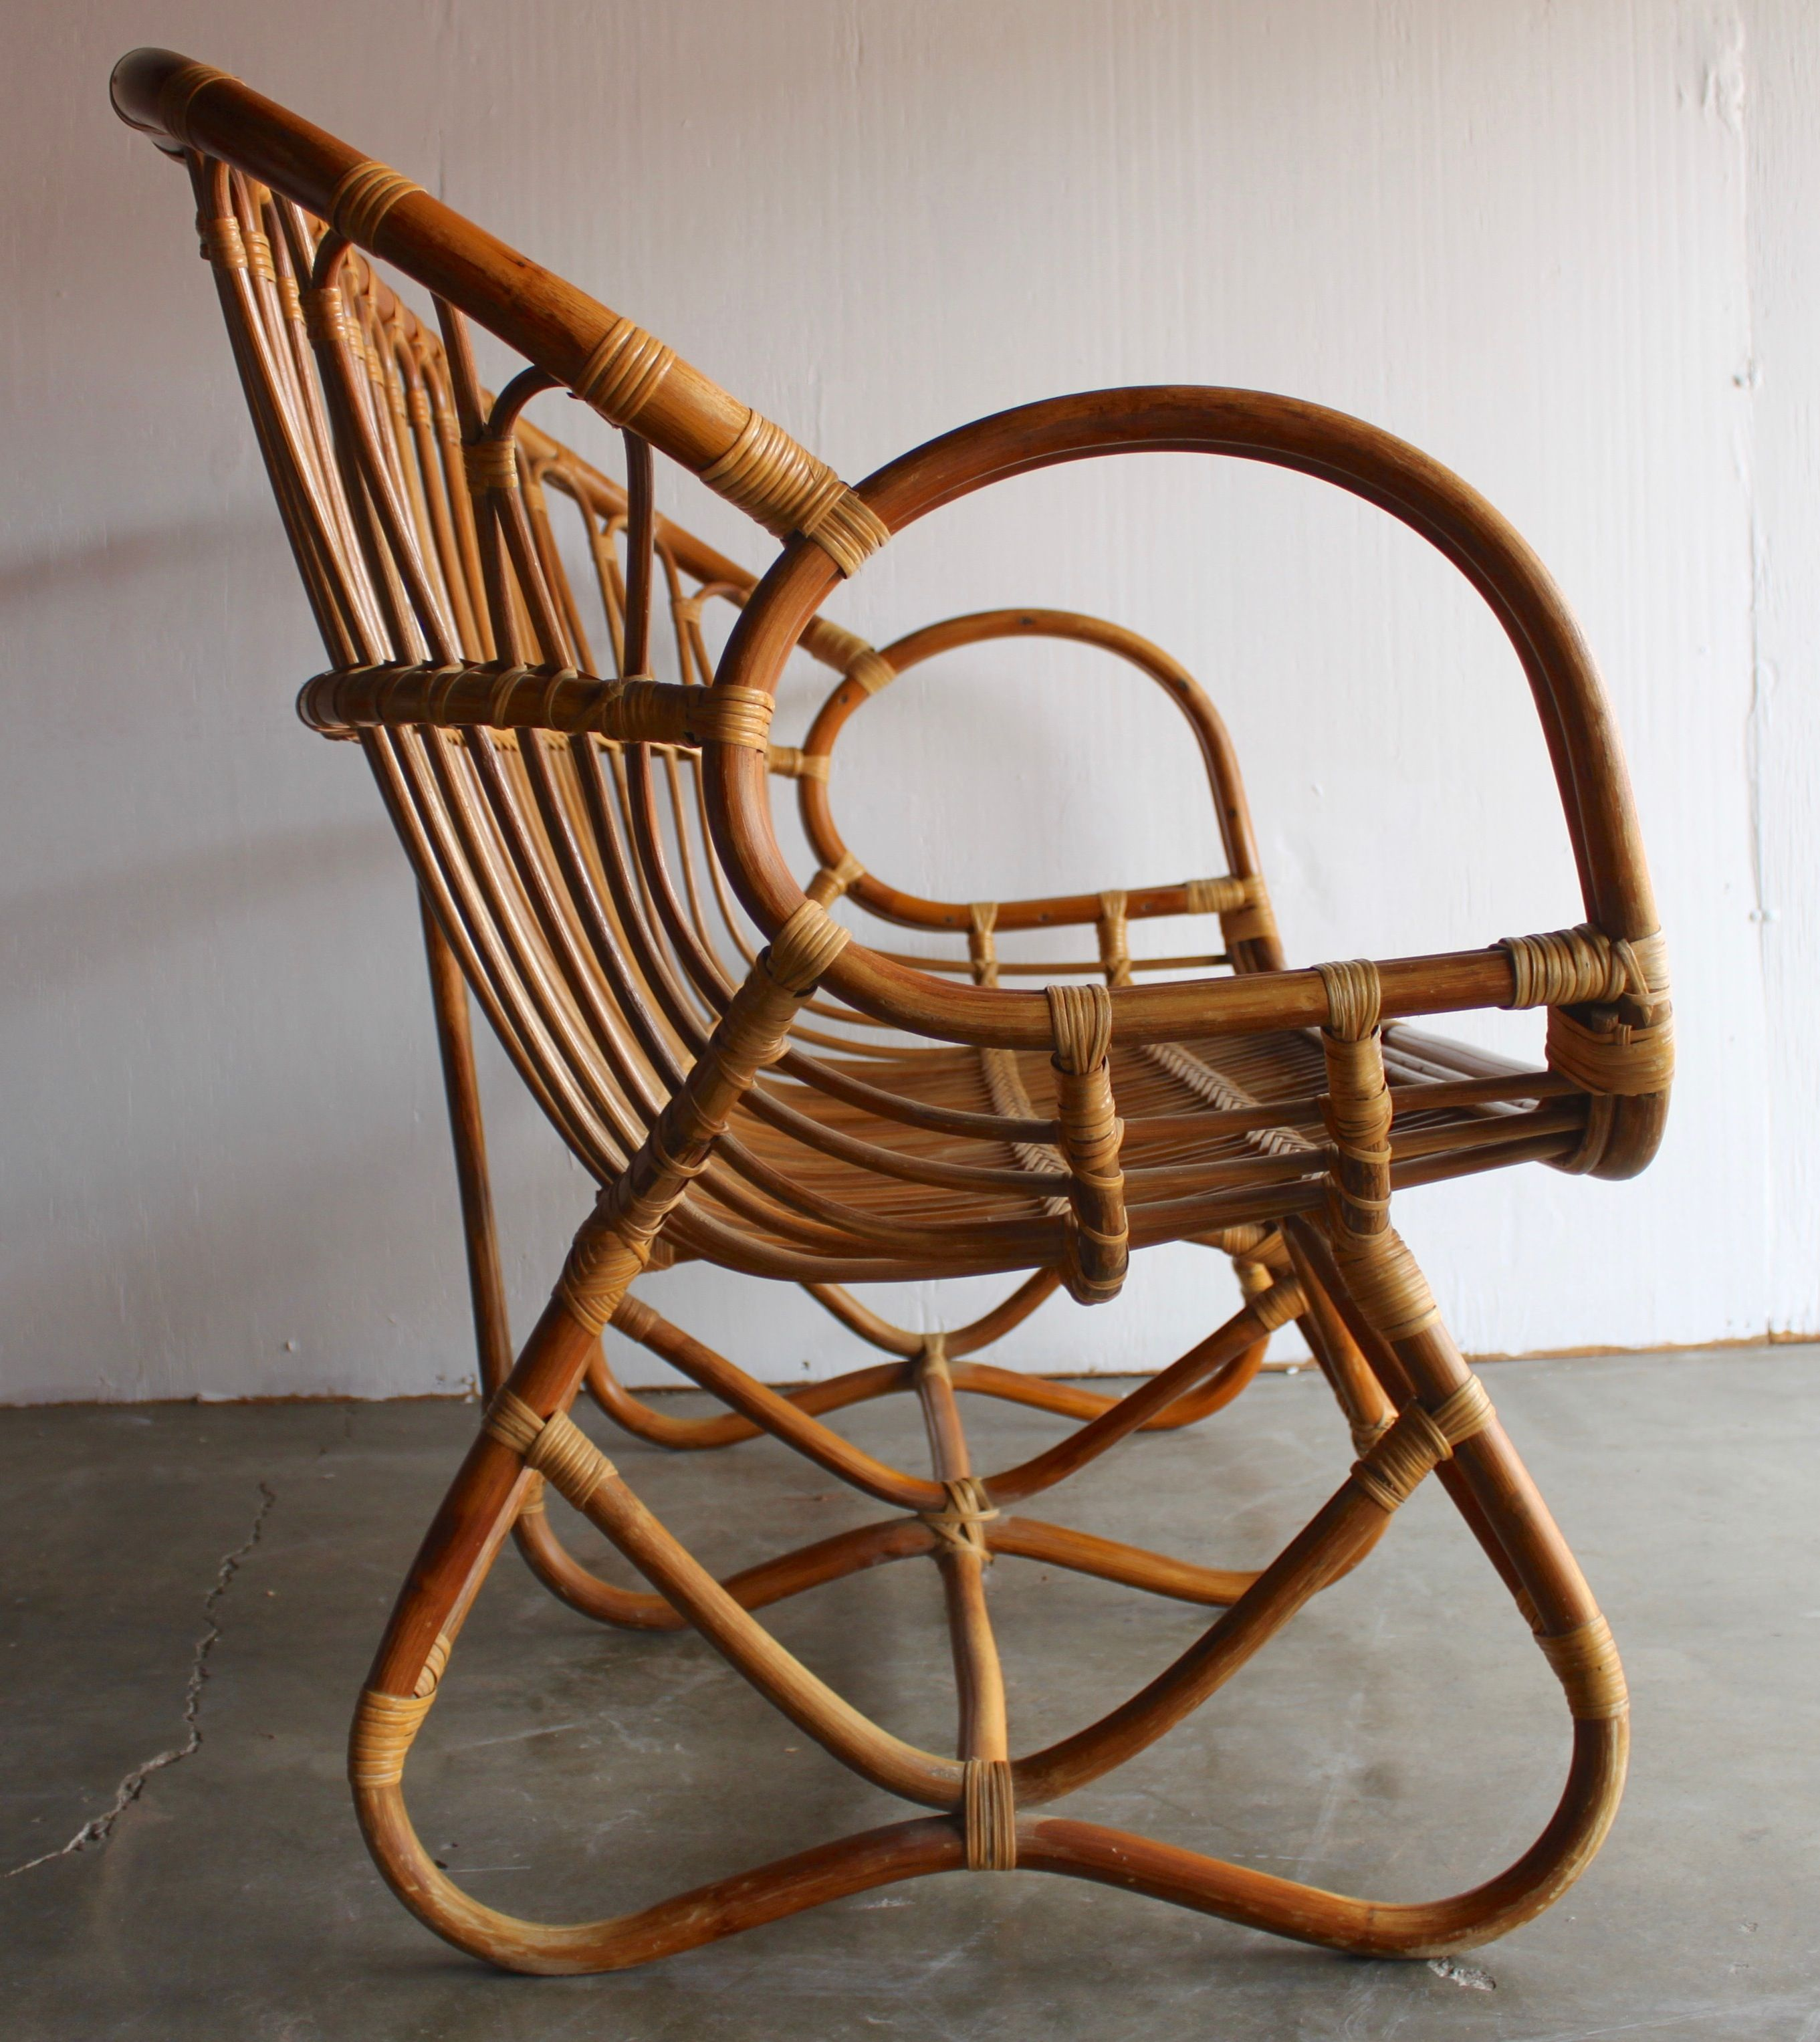 """Very desirable, sculptural bamboo and rattan settee/love seat attributed to Franco Albini.  Beautifully constructed, well-built piece with remarkable craftsmanship.  Exceptional condition with extremely minor surface wear.  No breaks or damage to caning and rattan.   51"""" long, 27"""" deep, 36"""" back height, arm height 28"""", seat height 16""""Free local pick up in San Diego.  Affordable private delivery to LA/Palm Springs and surrounding, please inquire.  Fre..."""